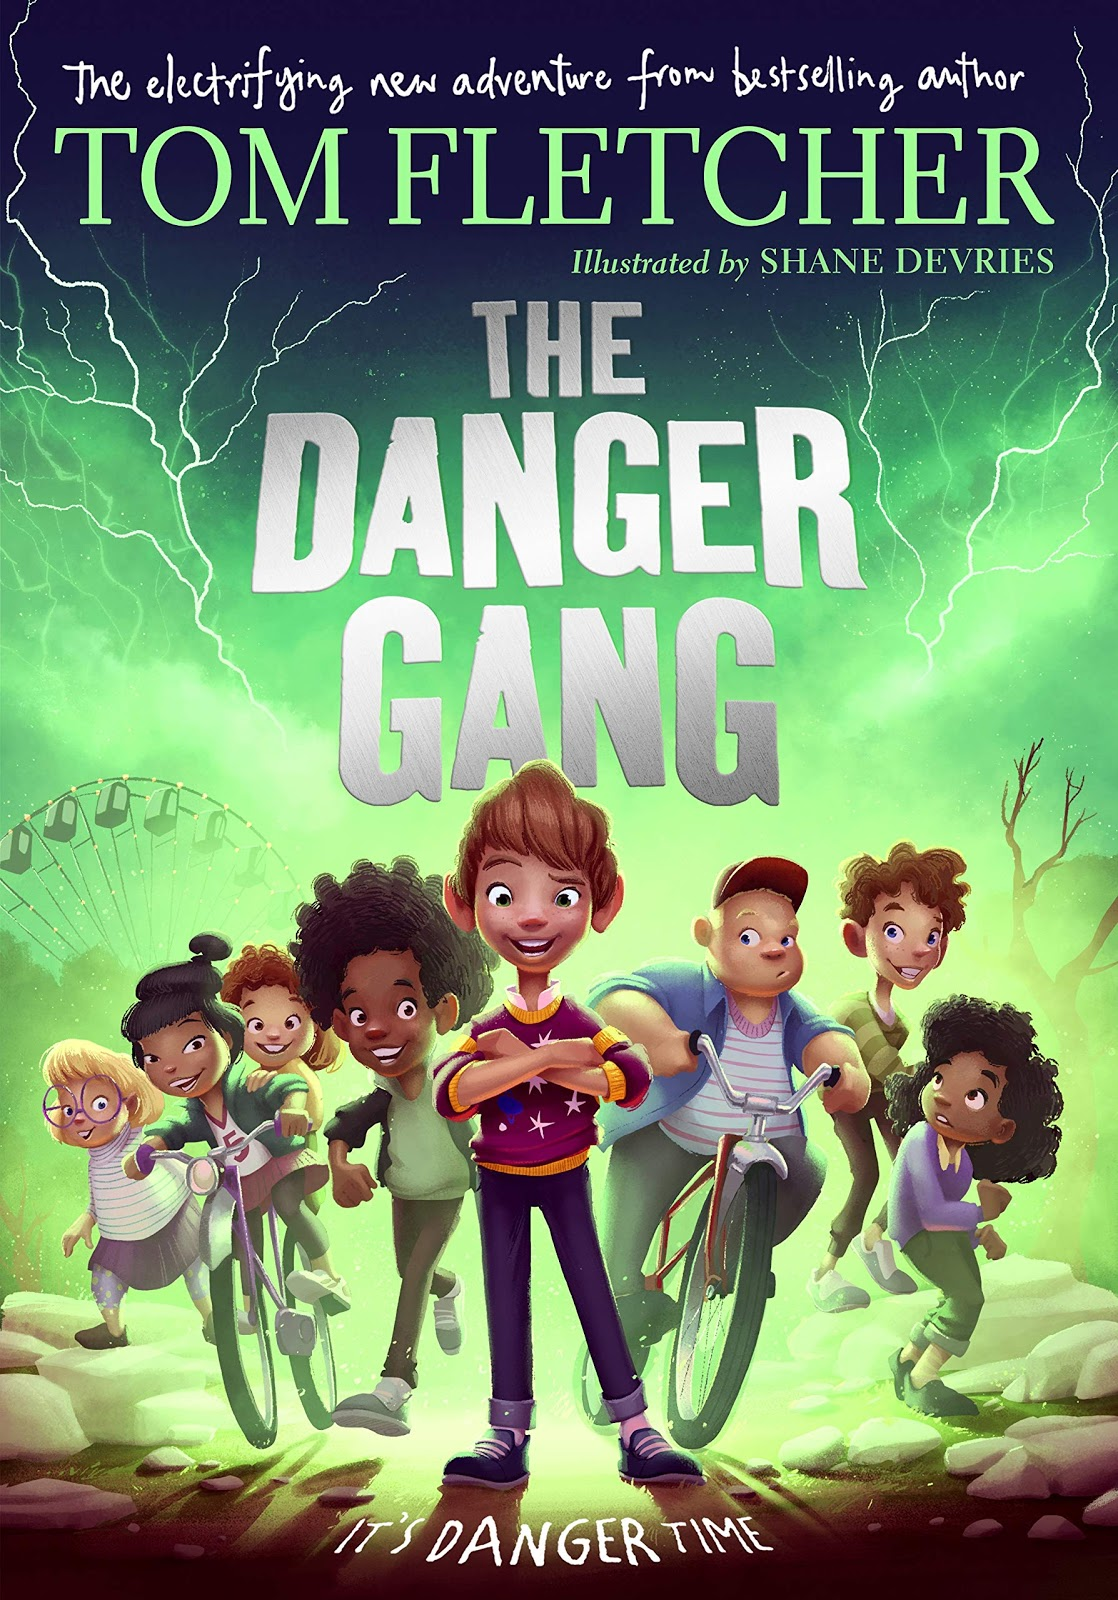 The Danger Gang by Tom Fletcher an example of children's book cover design fro kids over 6